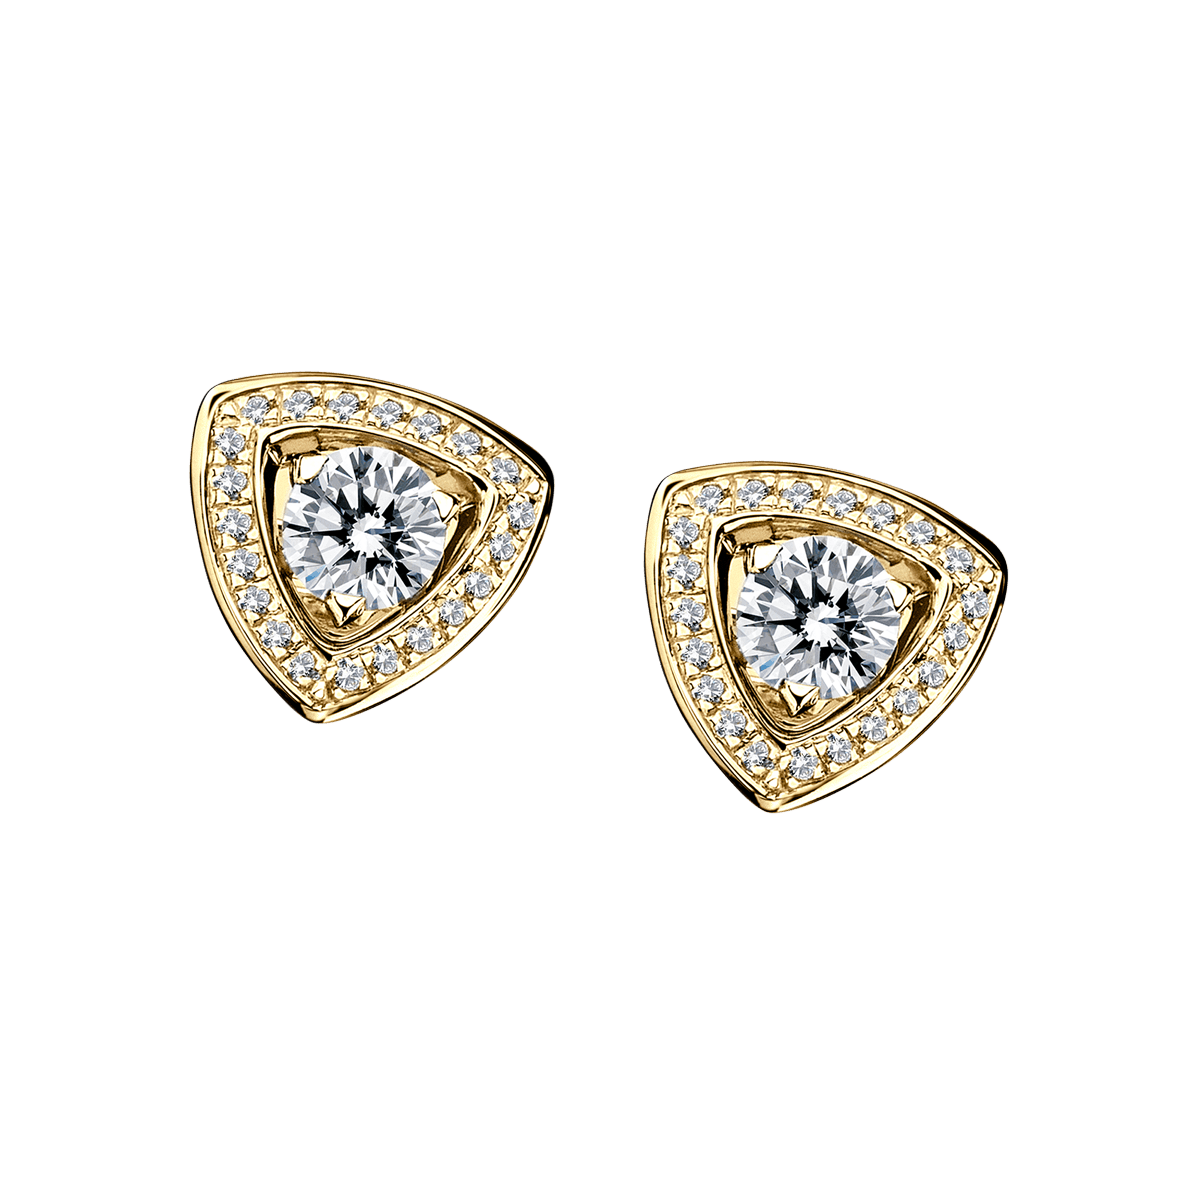 Dream & love Earrings,yellow gold, 2*0,30 carat approximatively, diamond pavement